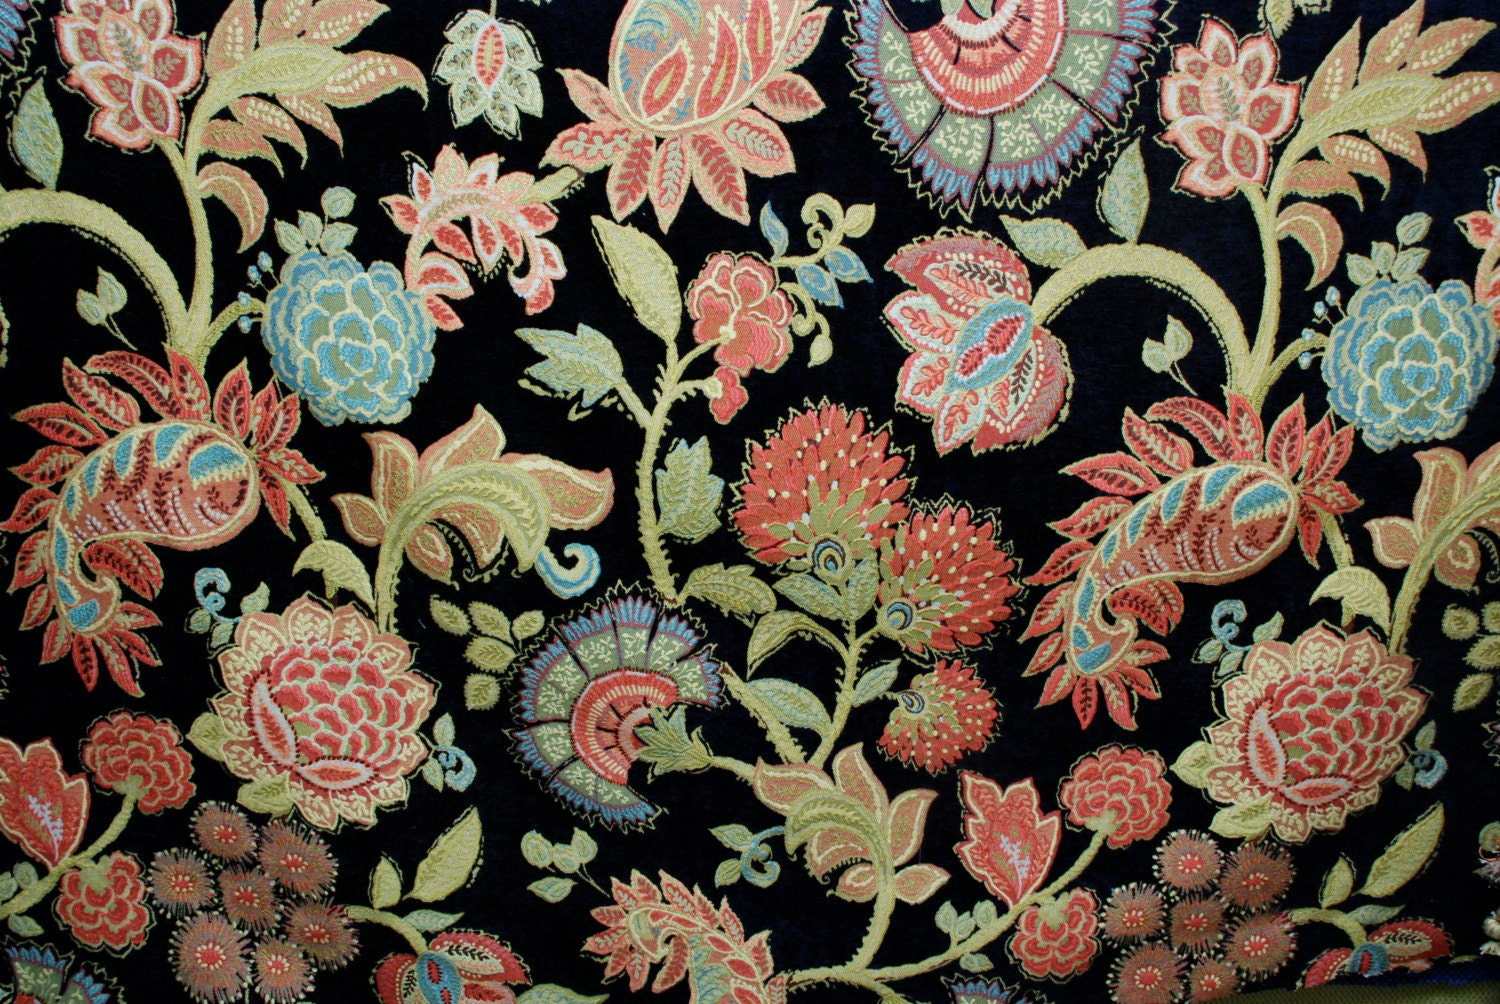 Home Decor Fabrics By The Yard: Bright Floral Upholstery Fabric